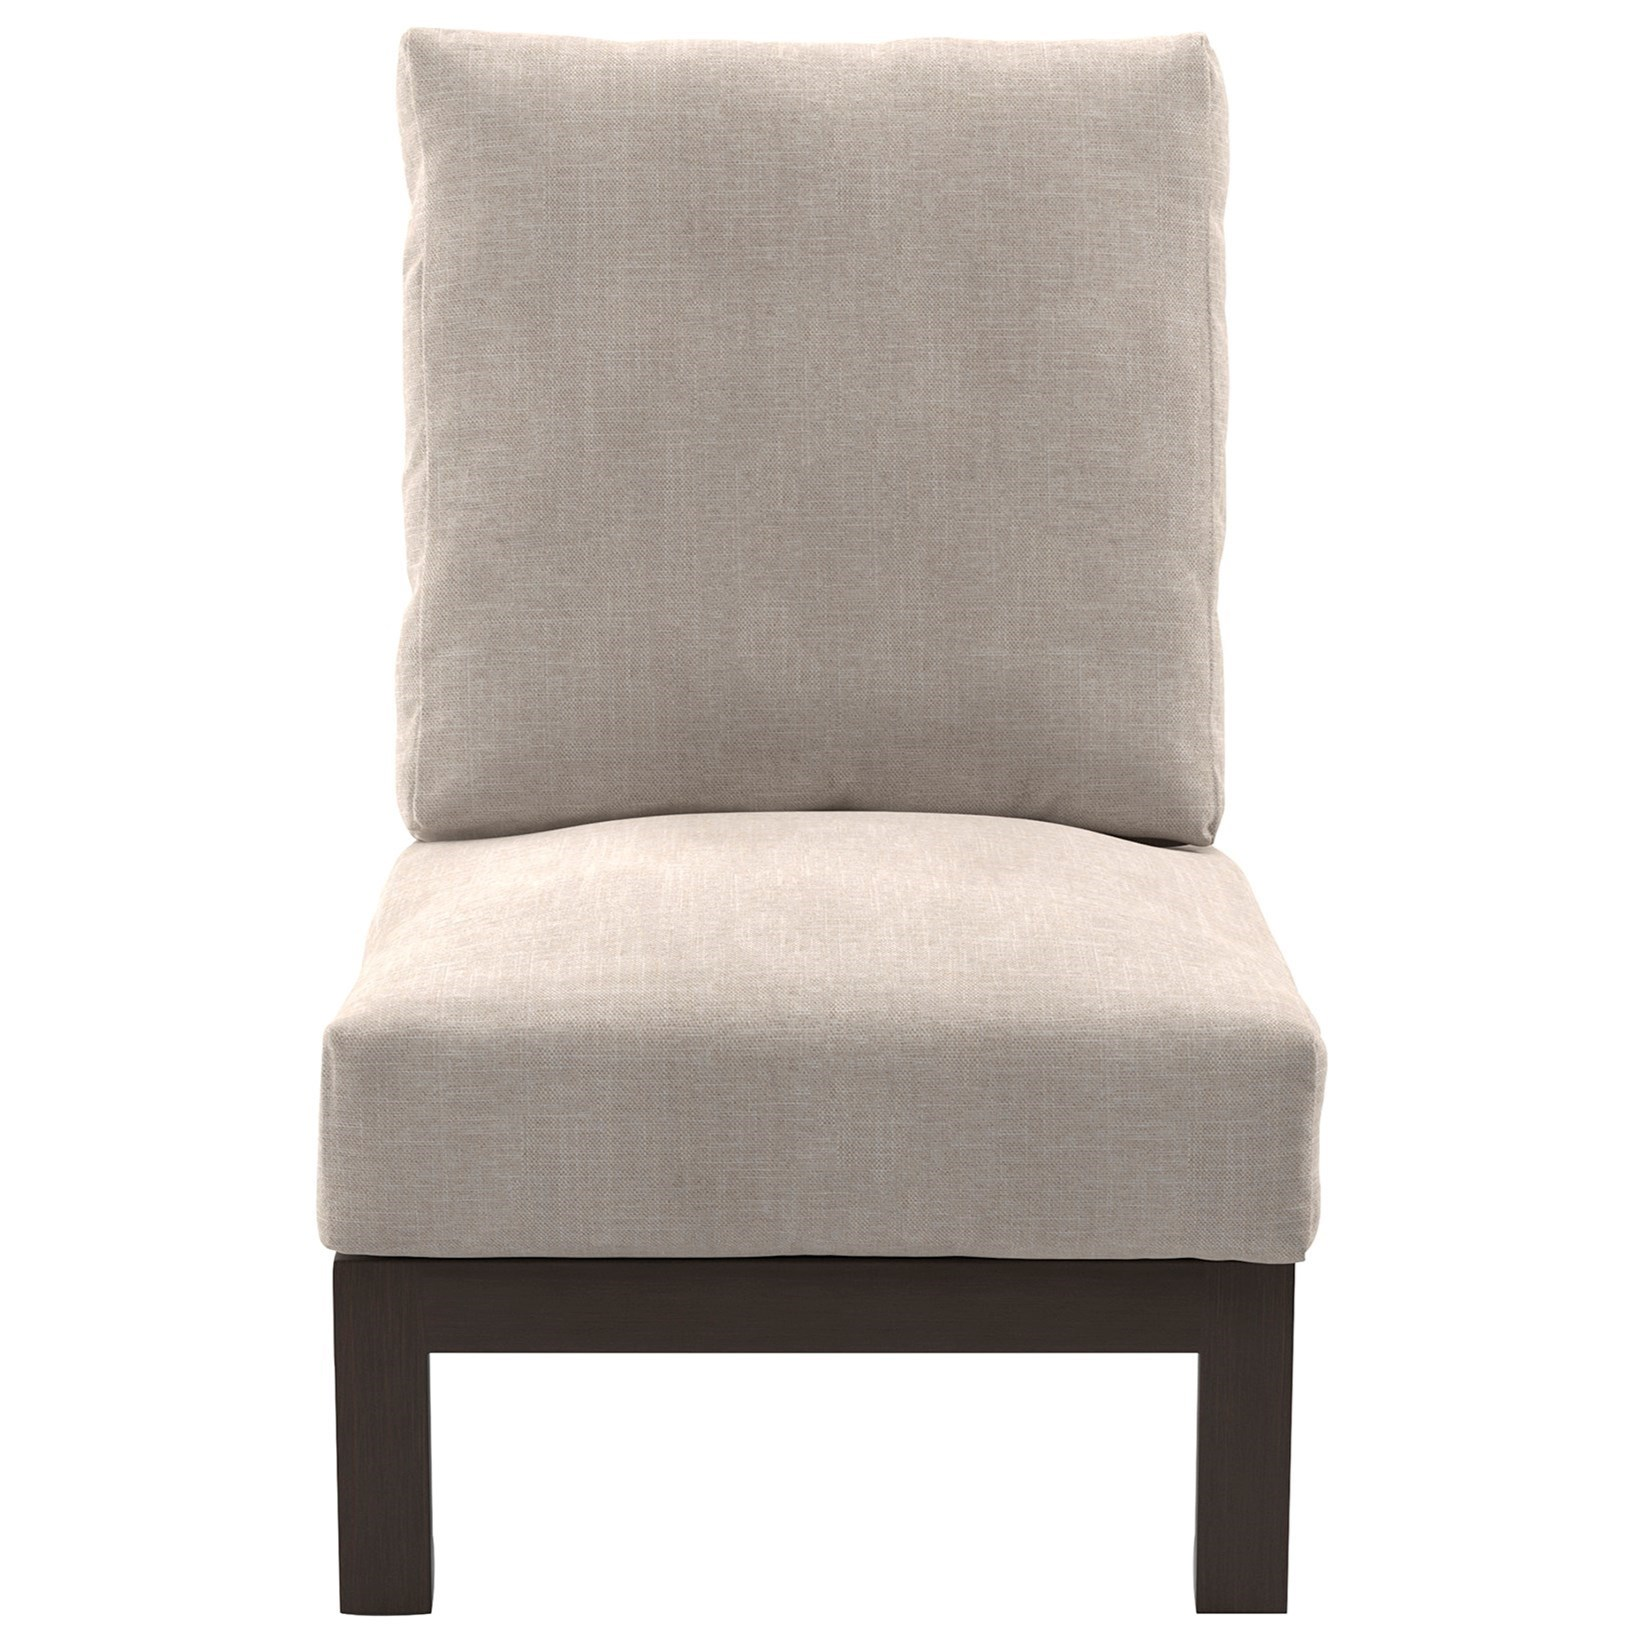 Signature Design by Ashley Cordova Reef Armless Chair with Cushion - Item Number: P645-846